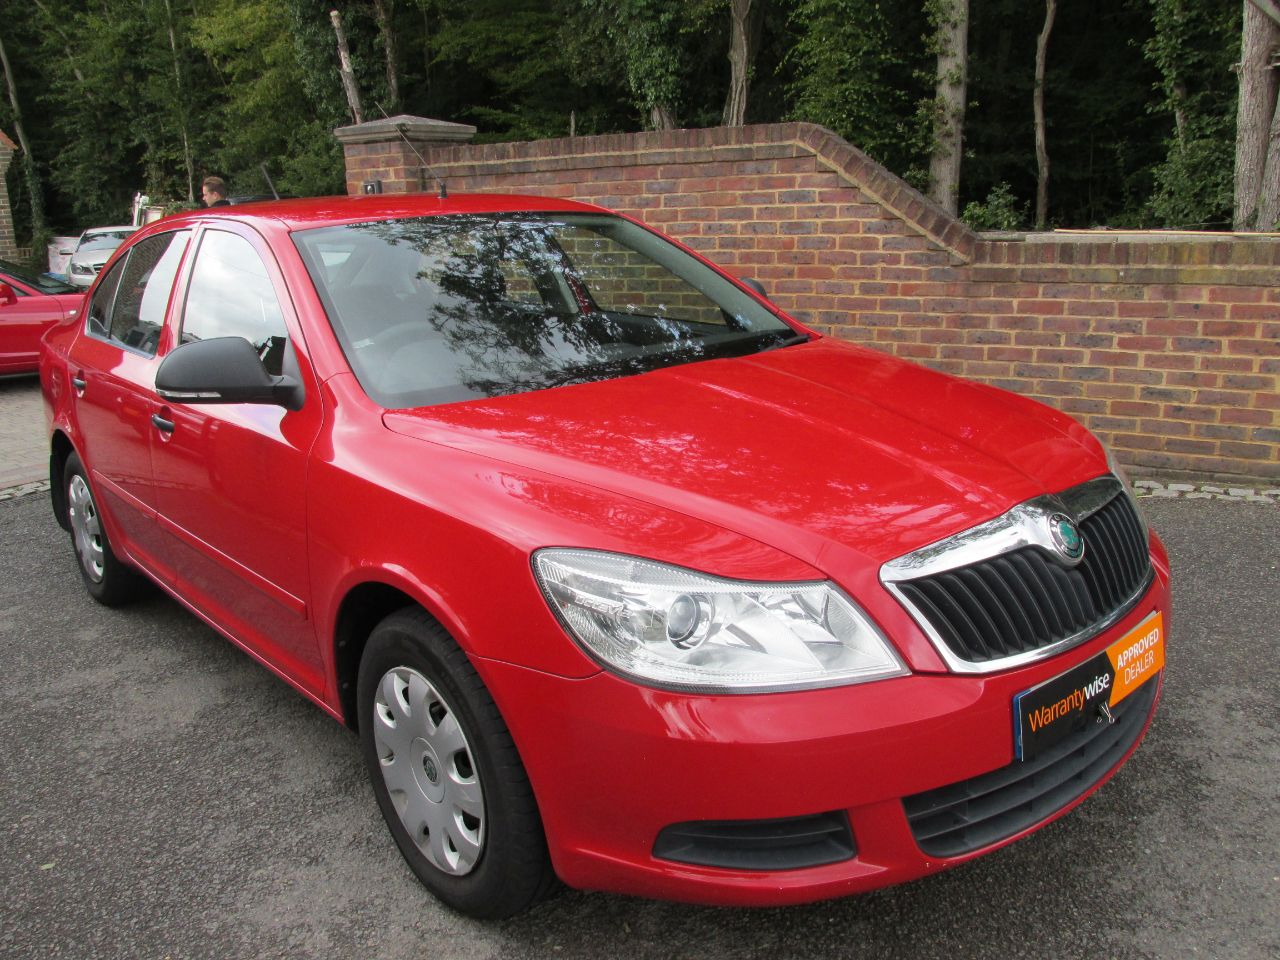 Skoda Octavia 1.6 TDI CR S 5dr Hatchback Diesel Red at A Touch of Class Kingsnorth